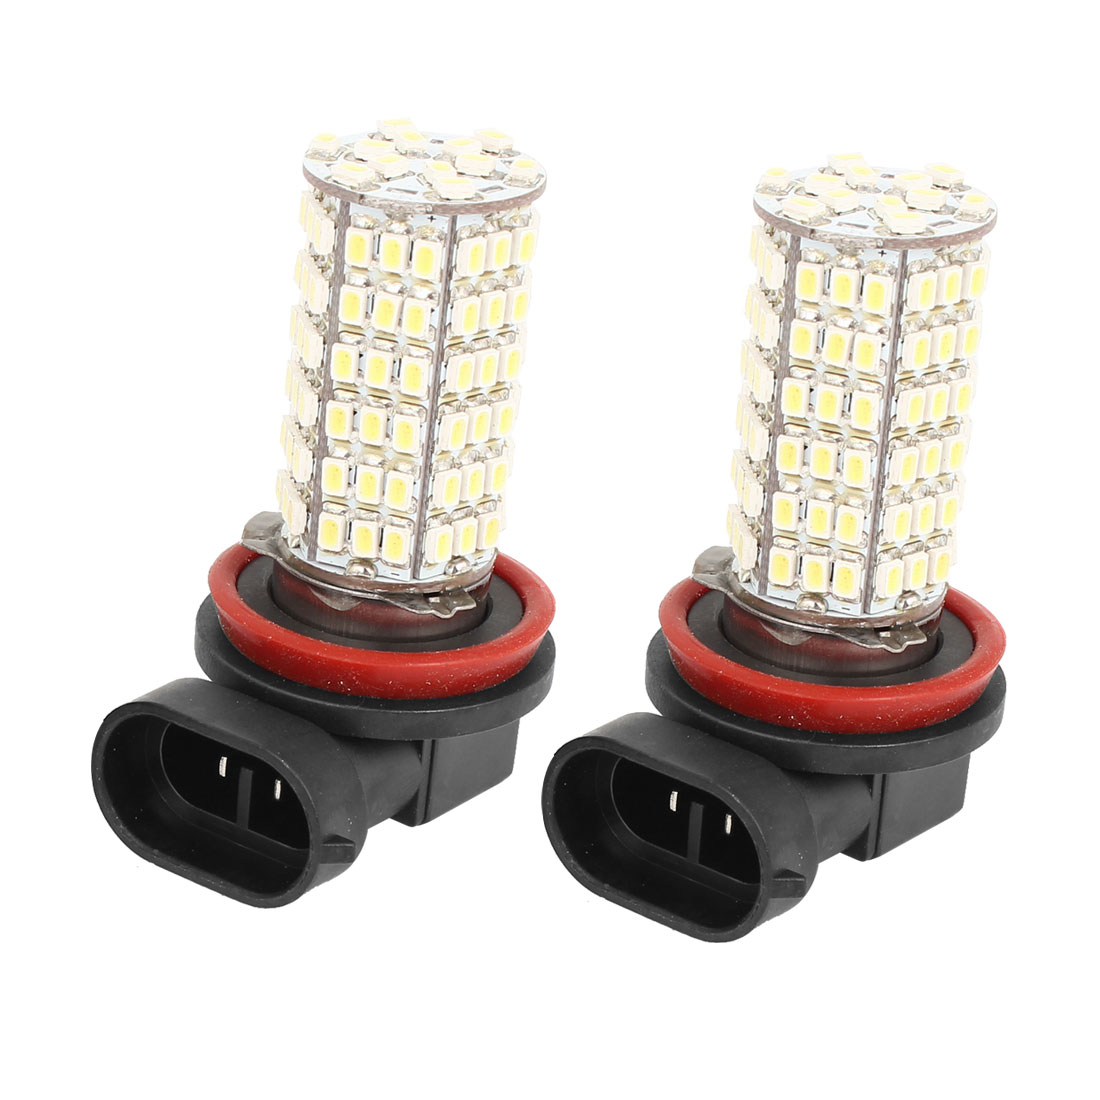 2 Pcs Car H11 120 SMD LED 3528 White Fog Parking Head Light Lamp Bulb 12V